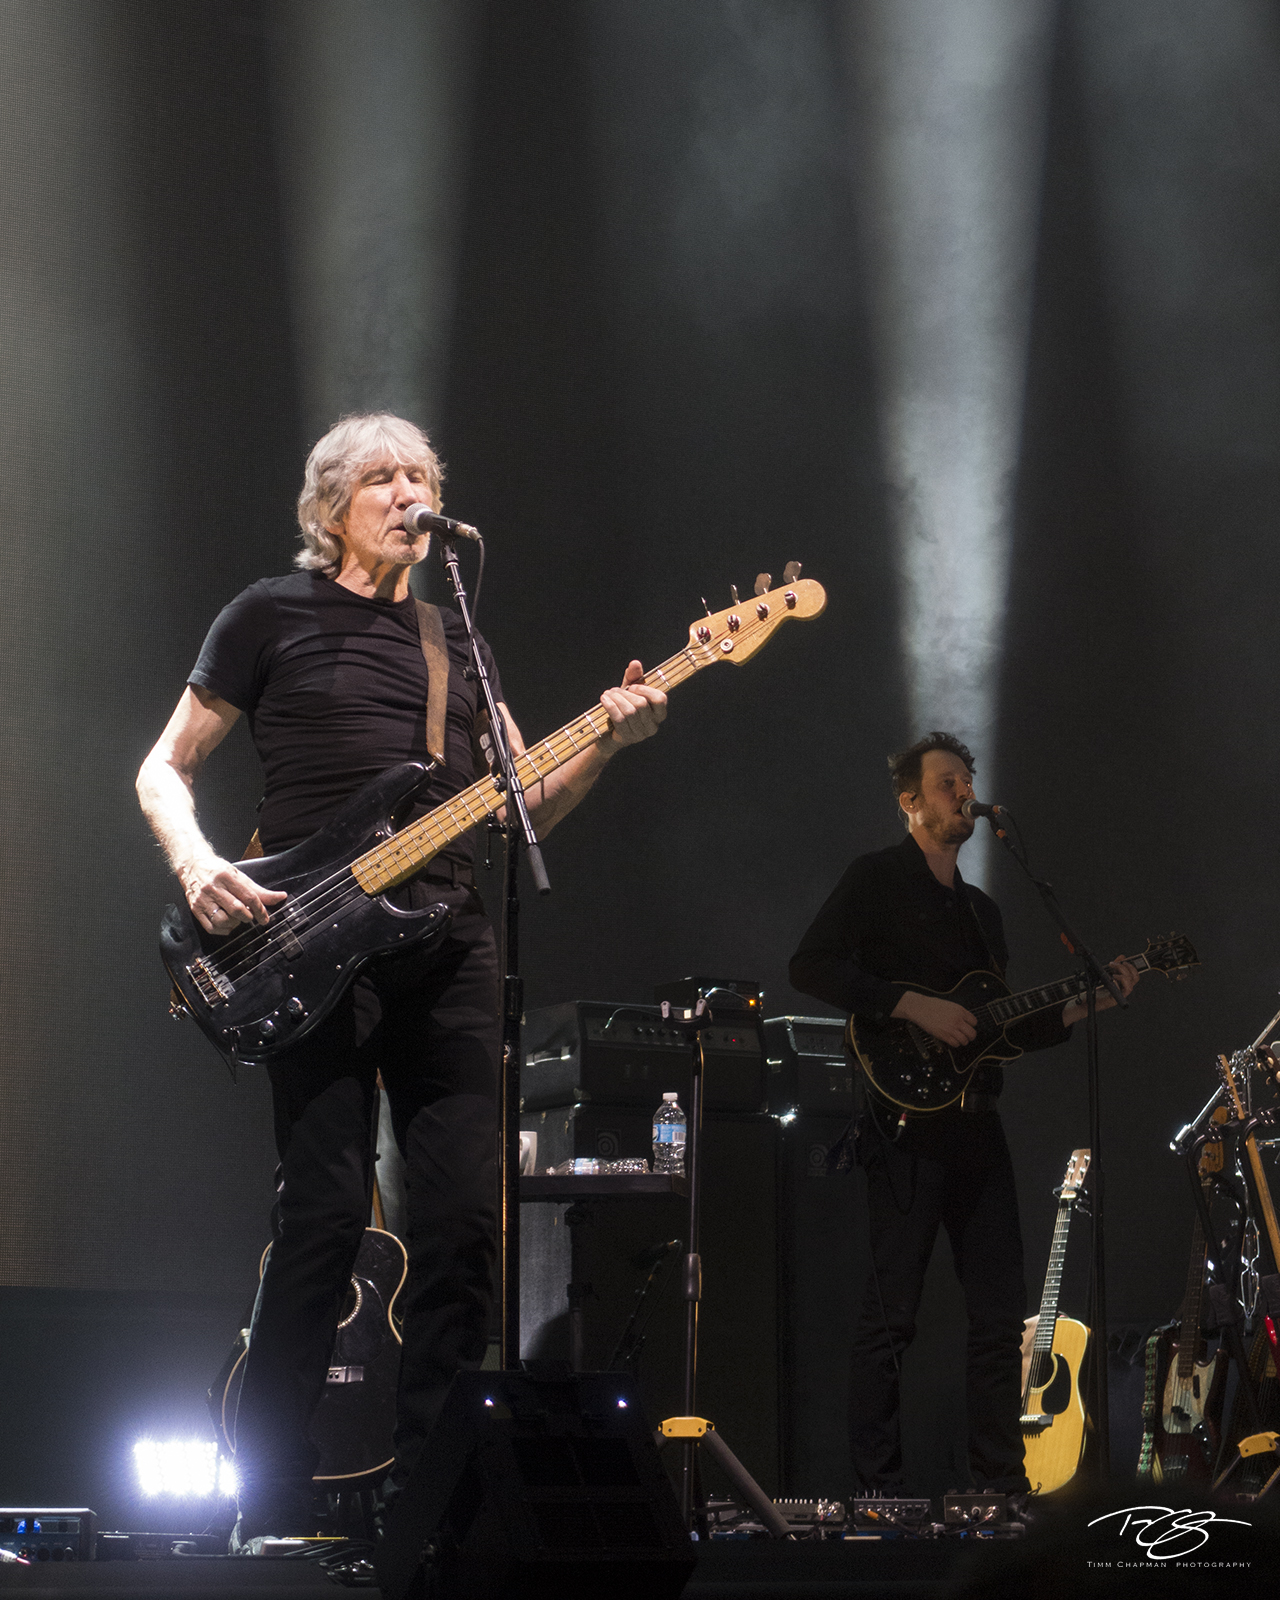 roger waters, pink floyd, in concert, performing, us + them, us and them, gus seyffert, photo